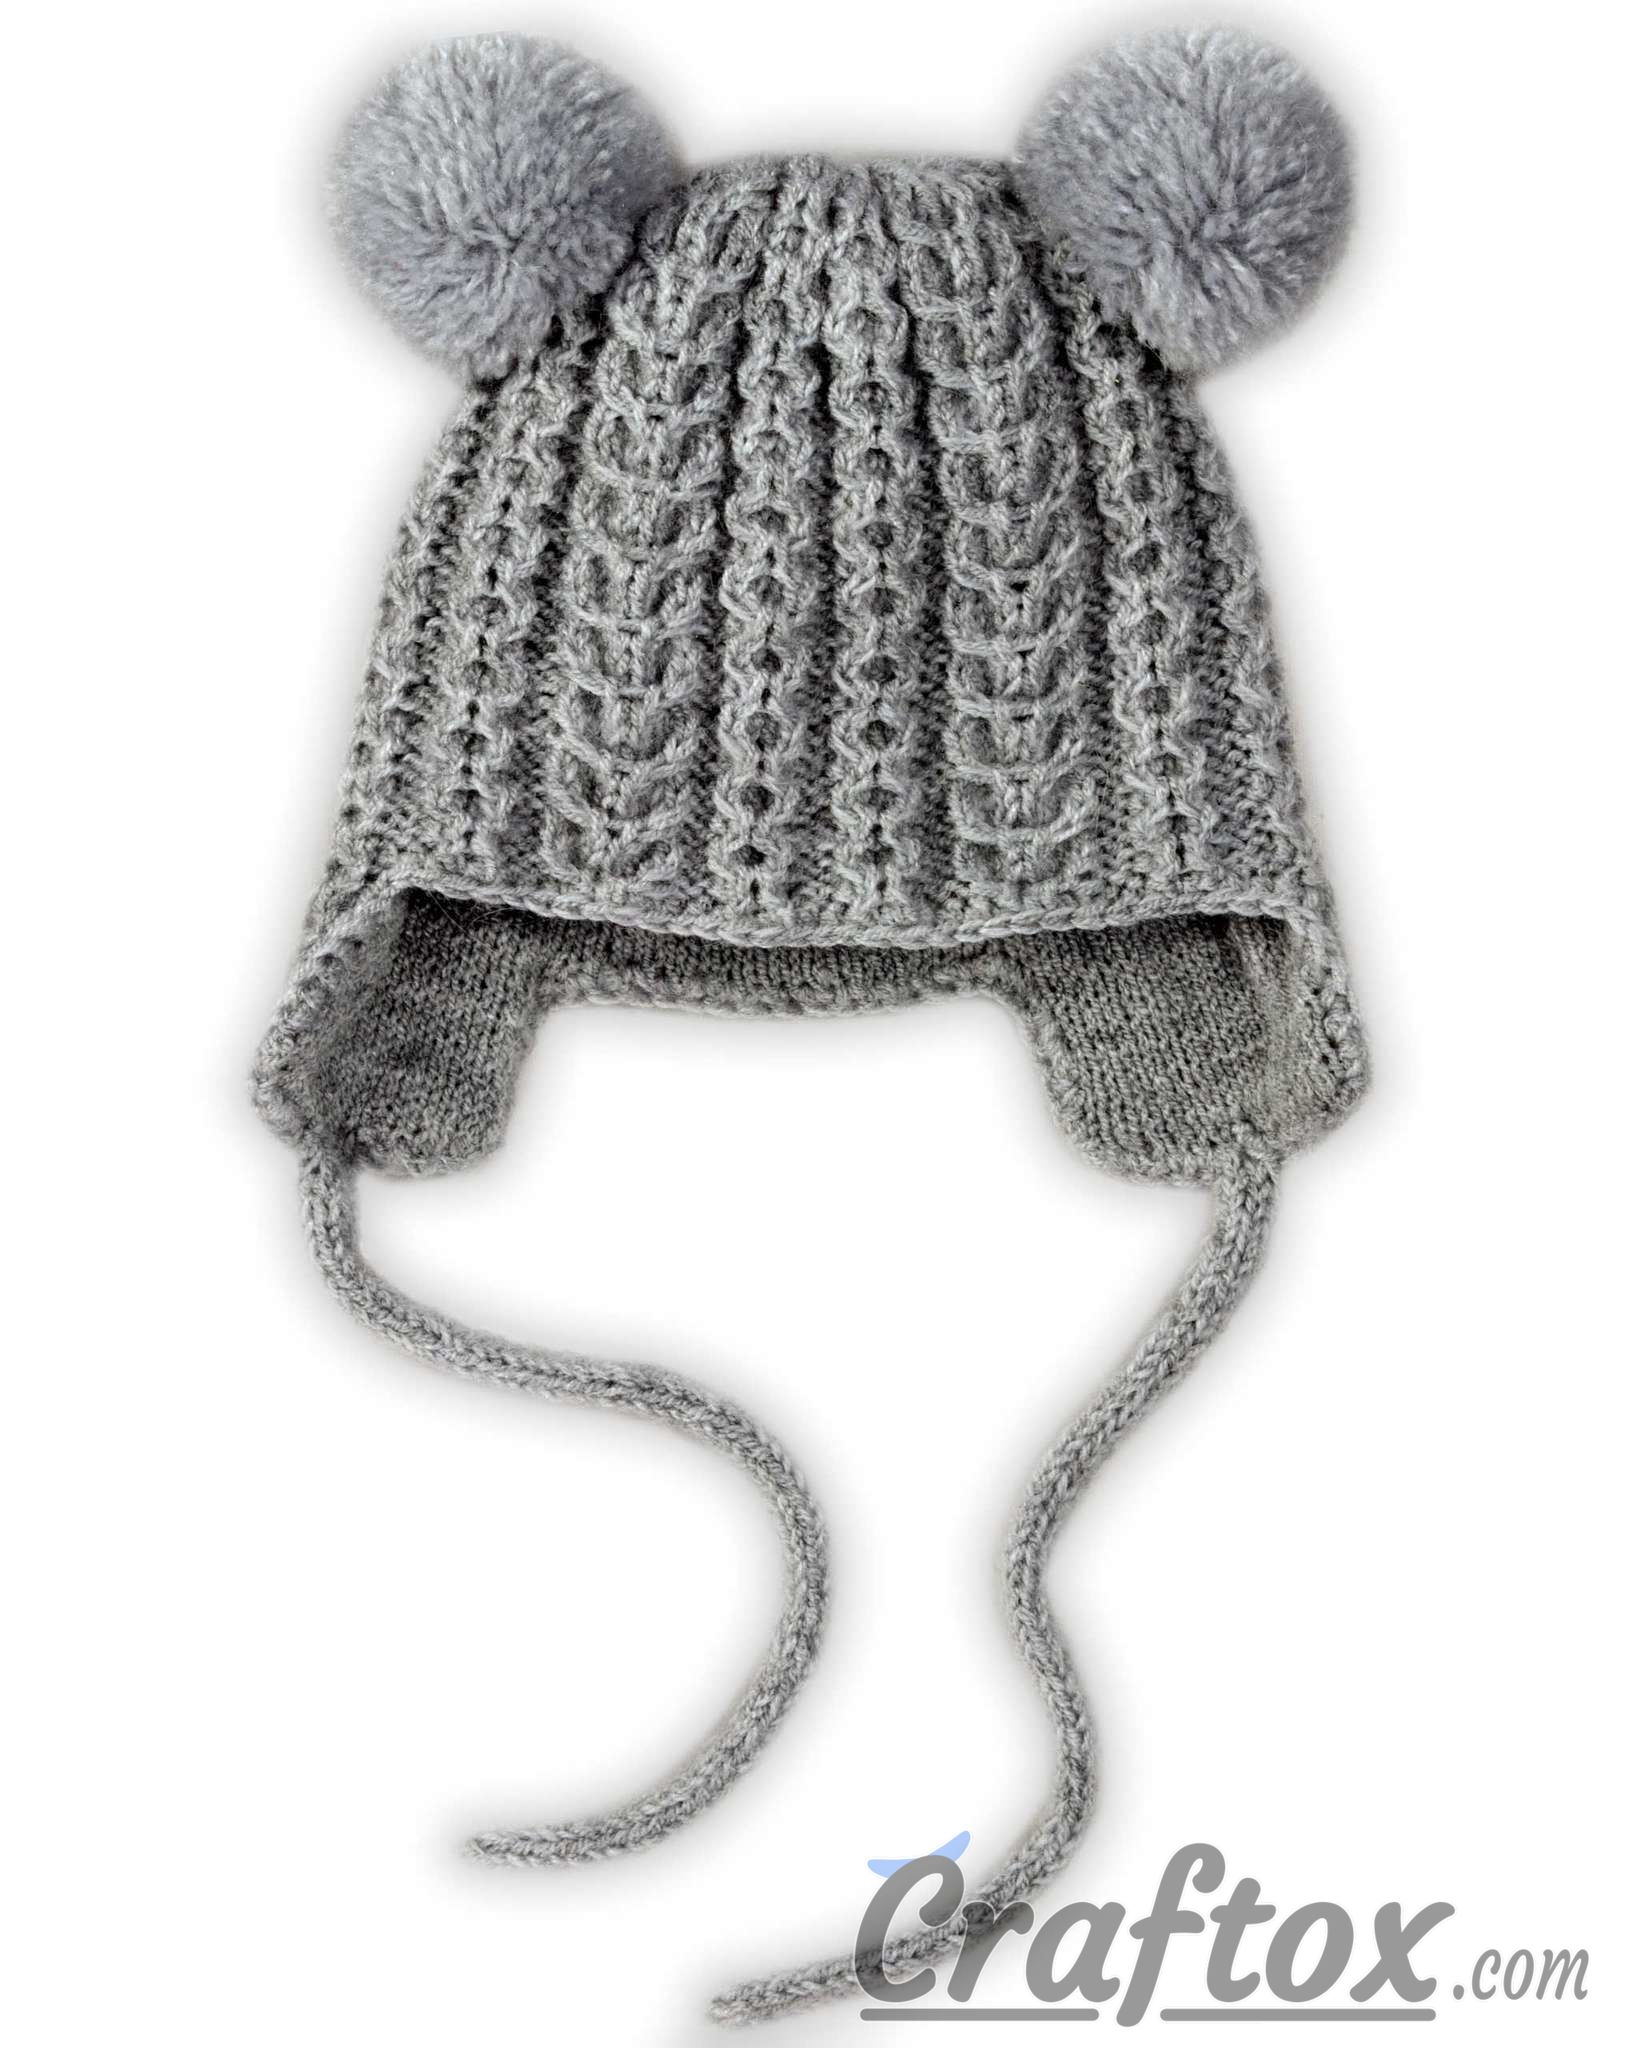 Knit Pom Pom Hat Pattern : Knitting winter hat with pom poms for kid. Free pattern